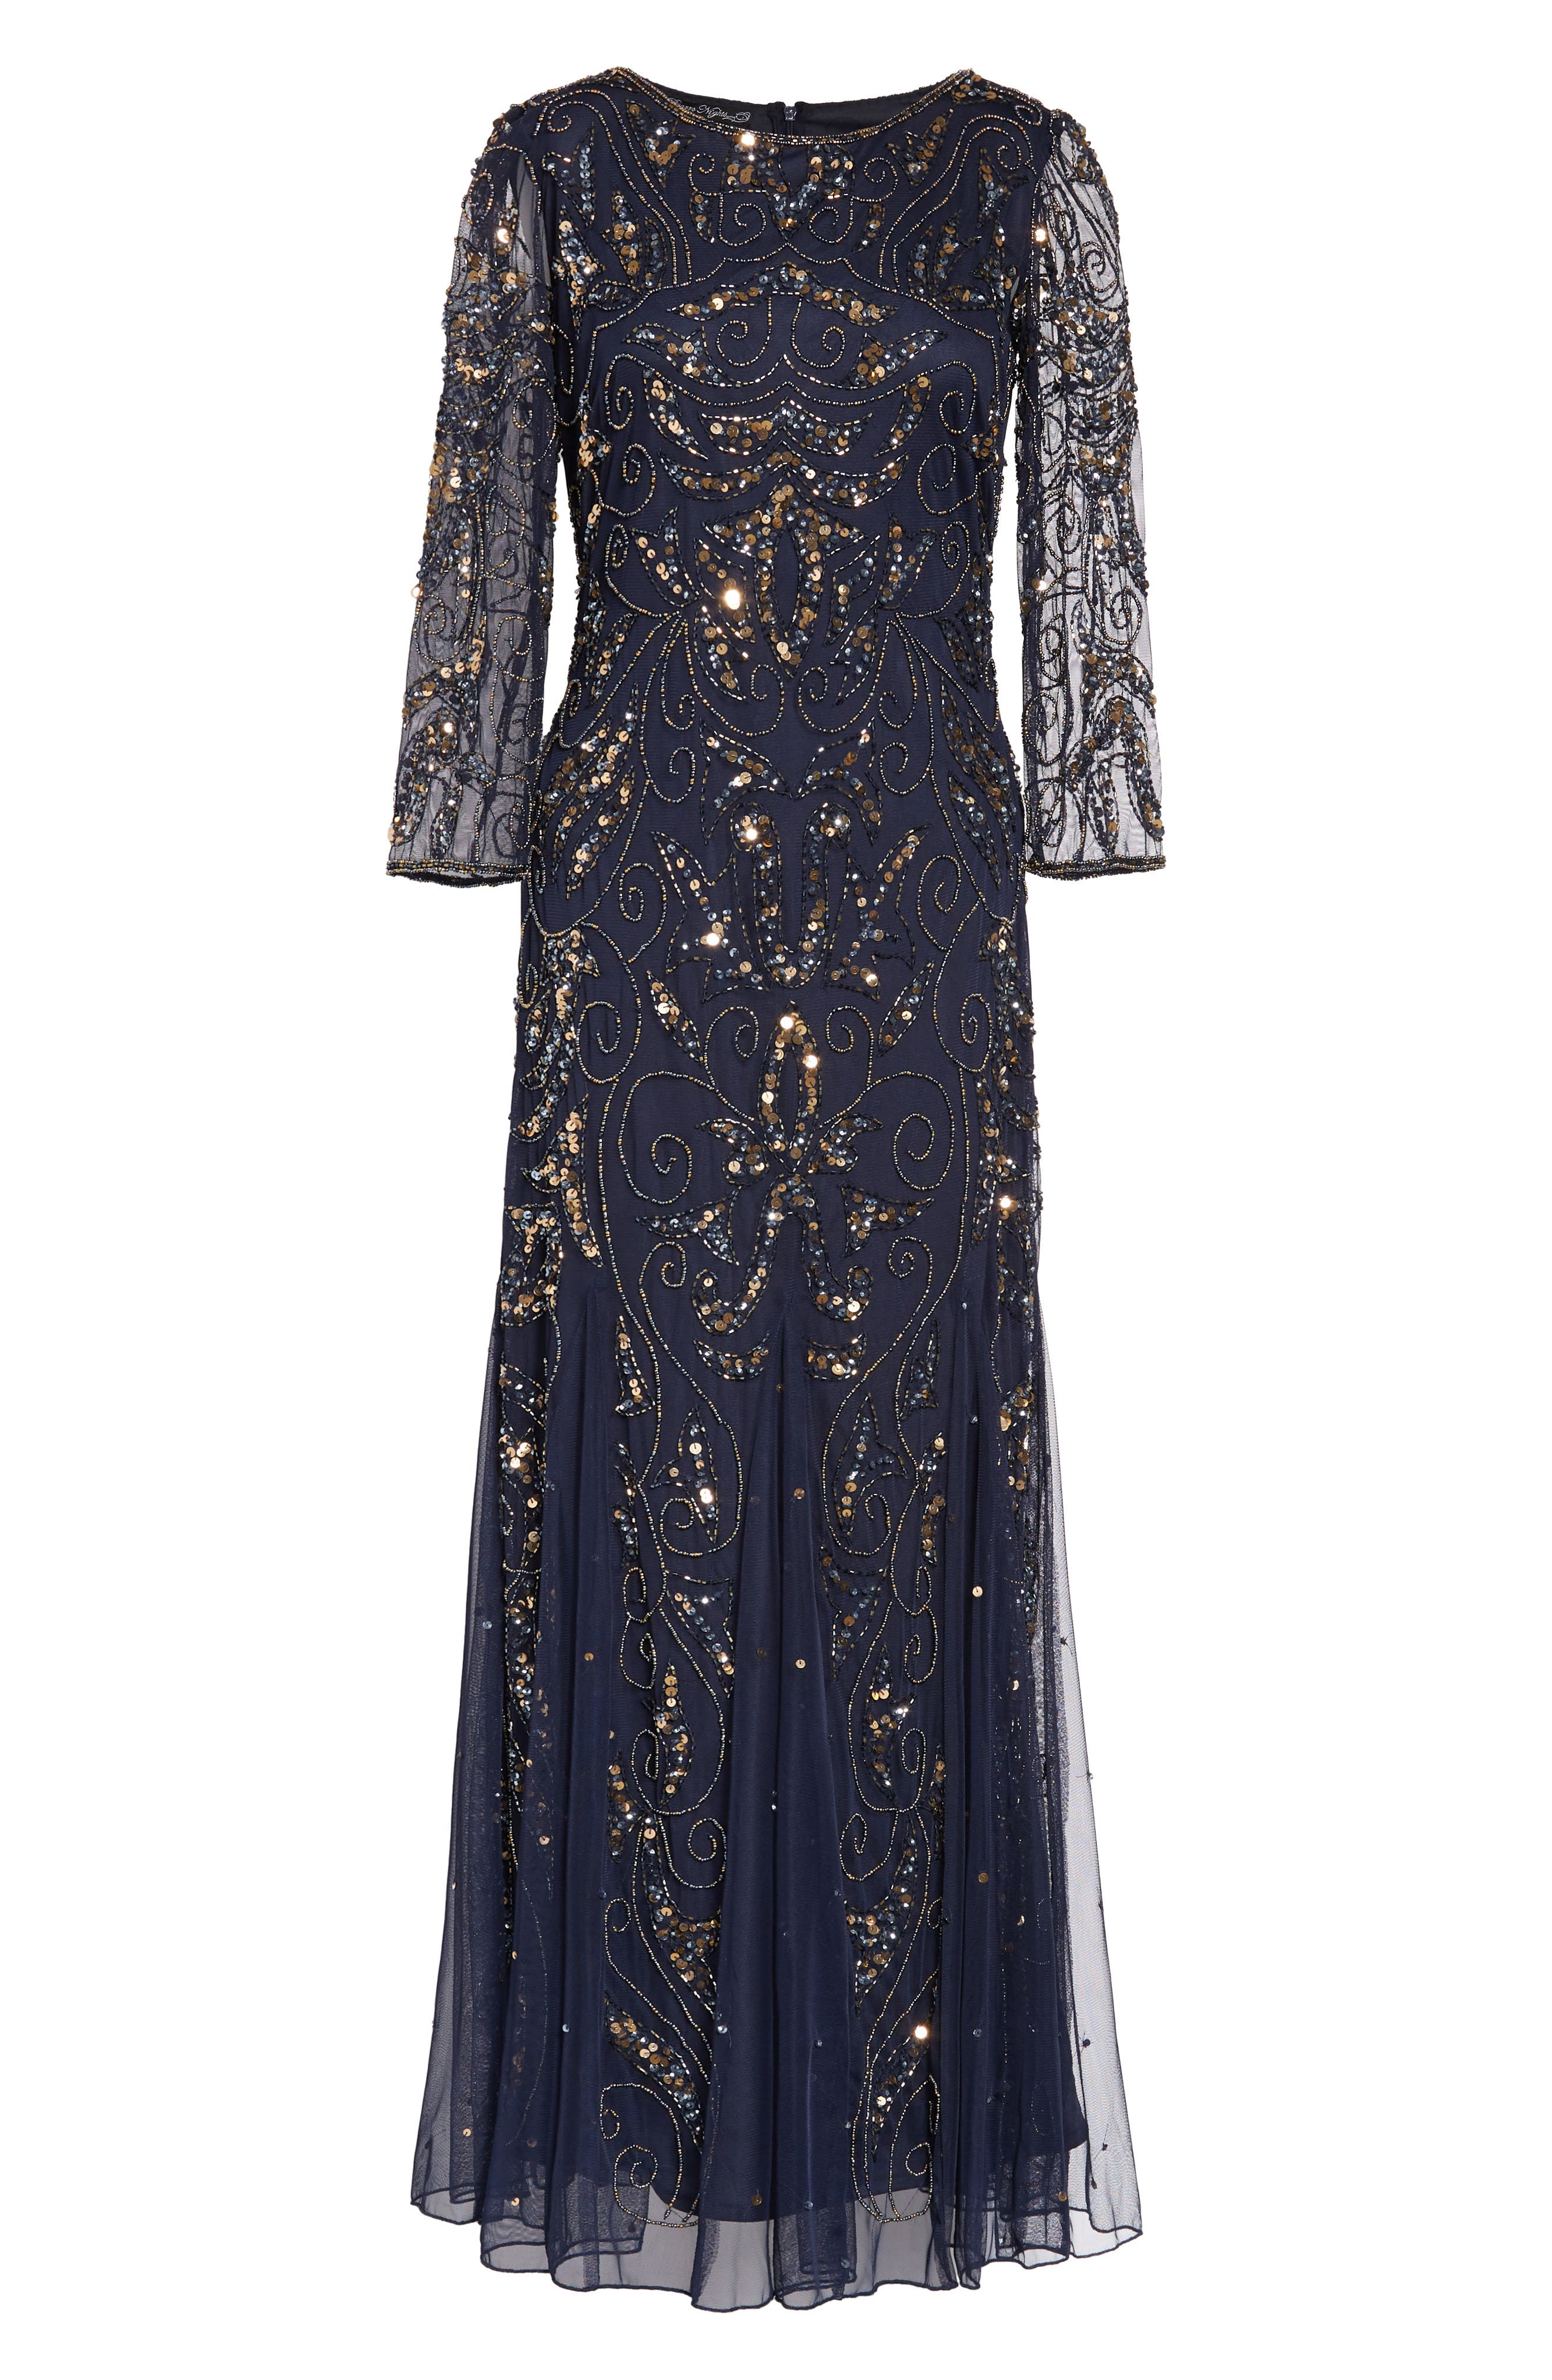 1930s Dresses | 30s Art Deco Dress Pisarro Nights Embellished Mesh Gown Size 14P - Blue $218.00 AT vintagedancer.com